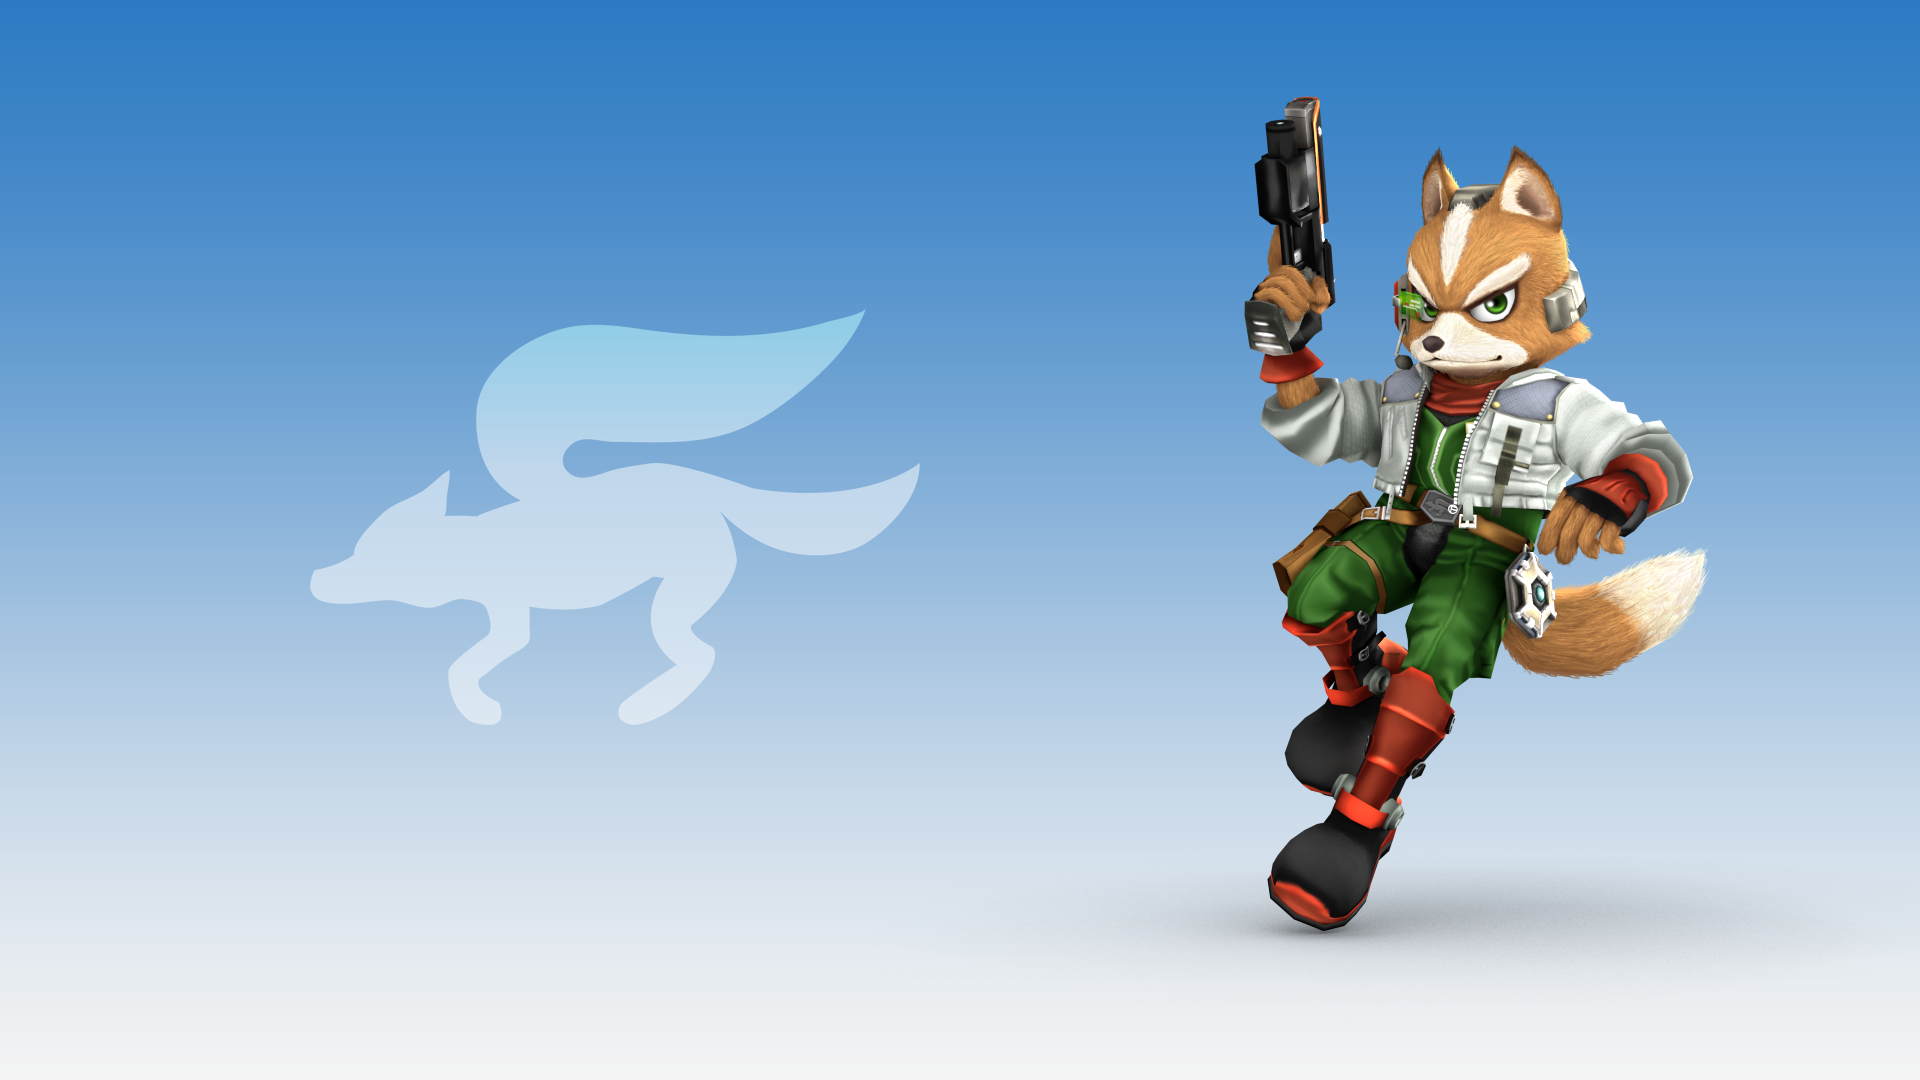 Fox Wallpaper Smash 3 By Ryo 10pa